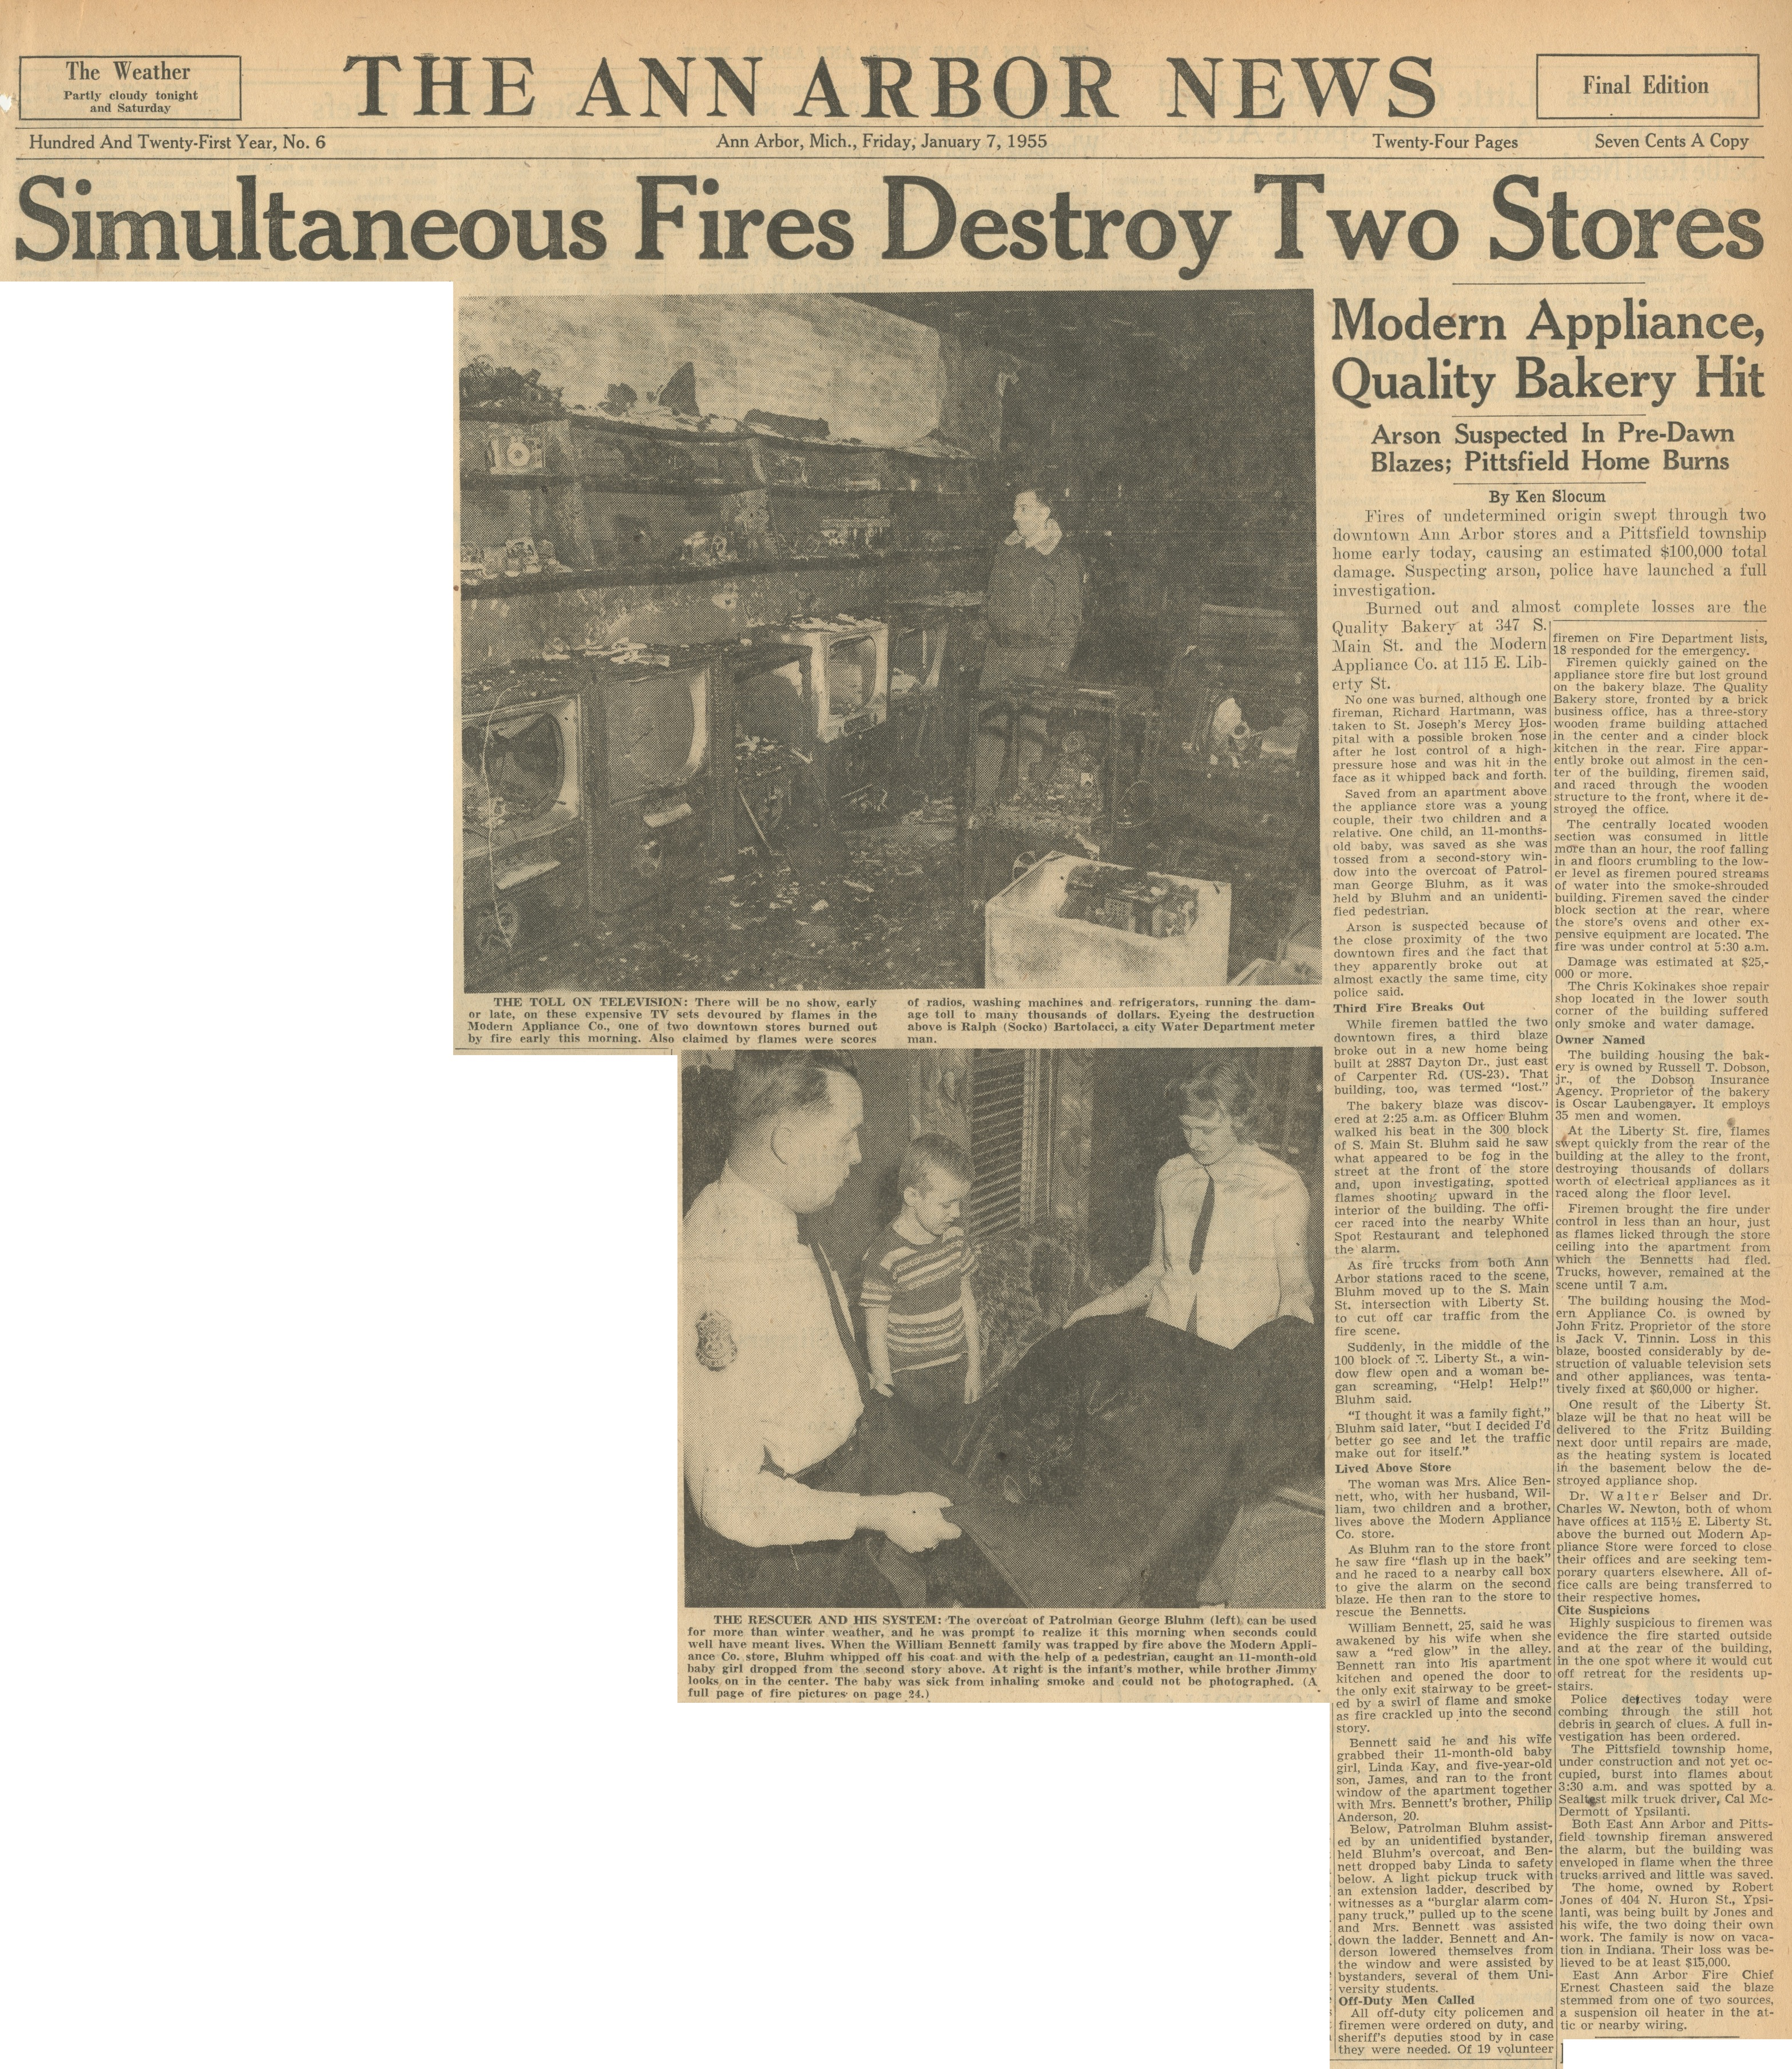 Simultaneous Fires Destroy Two Stores image